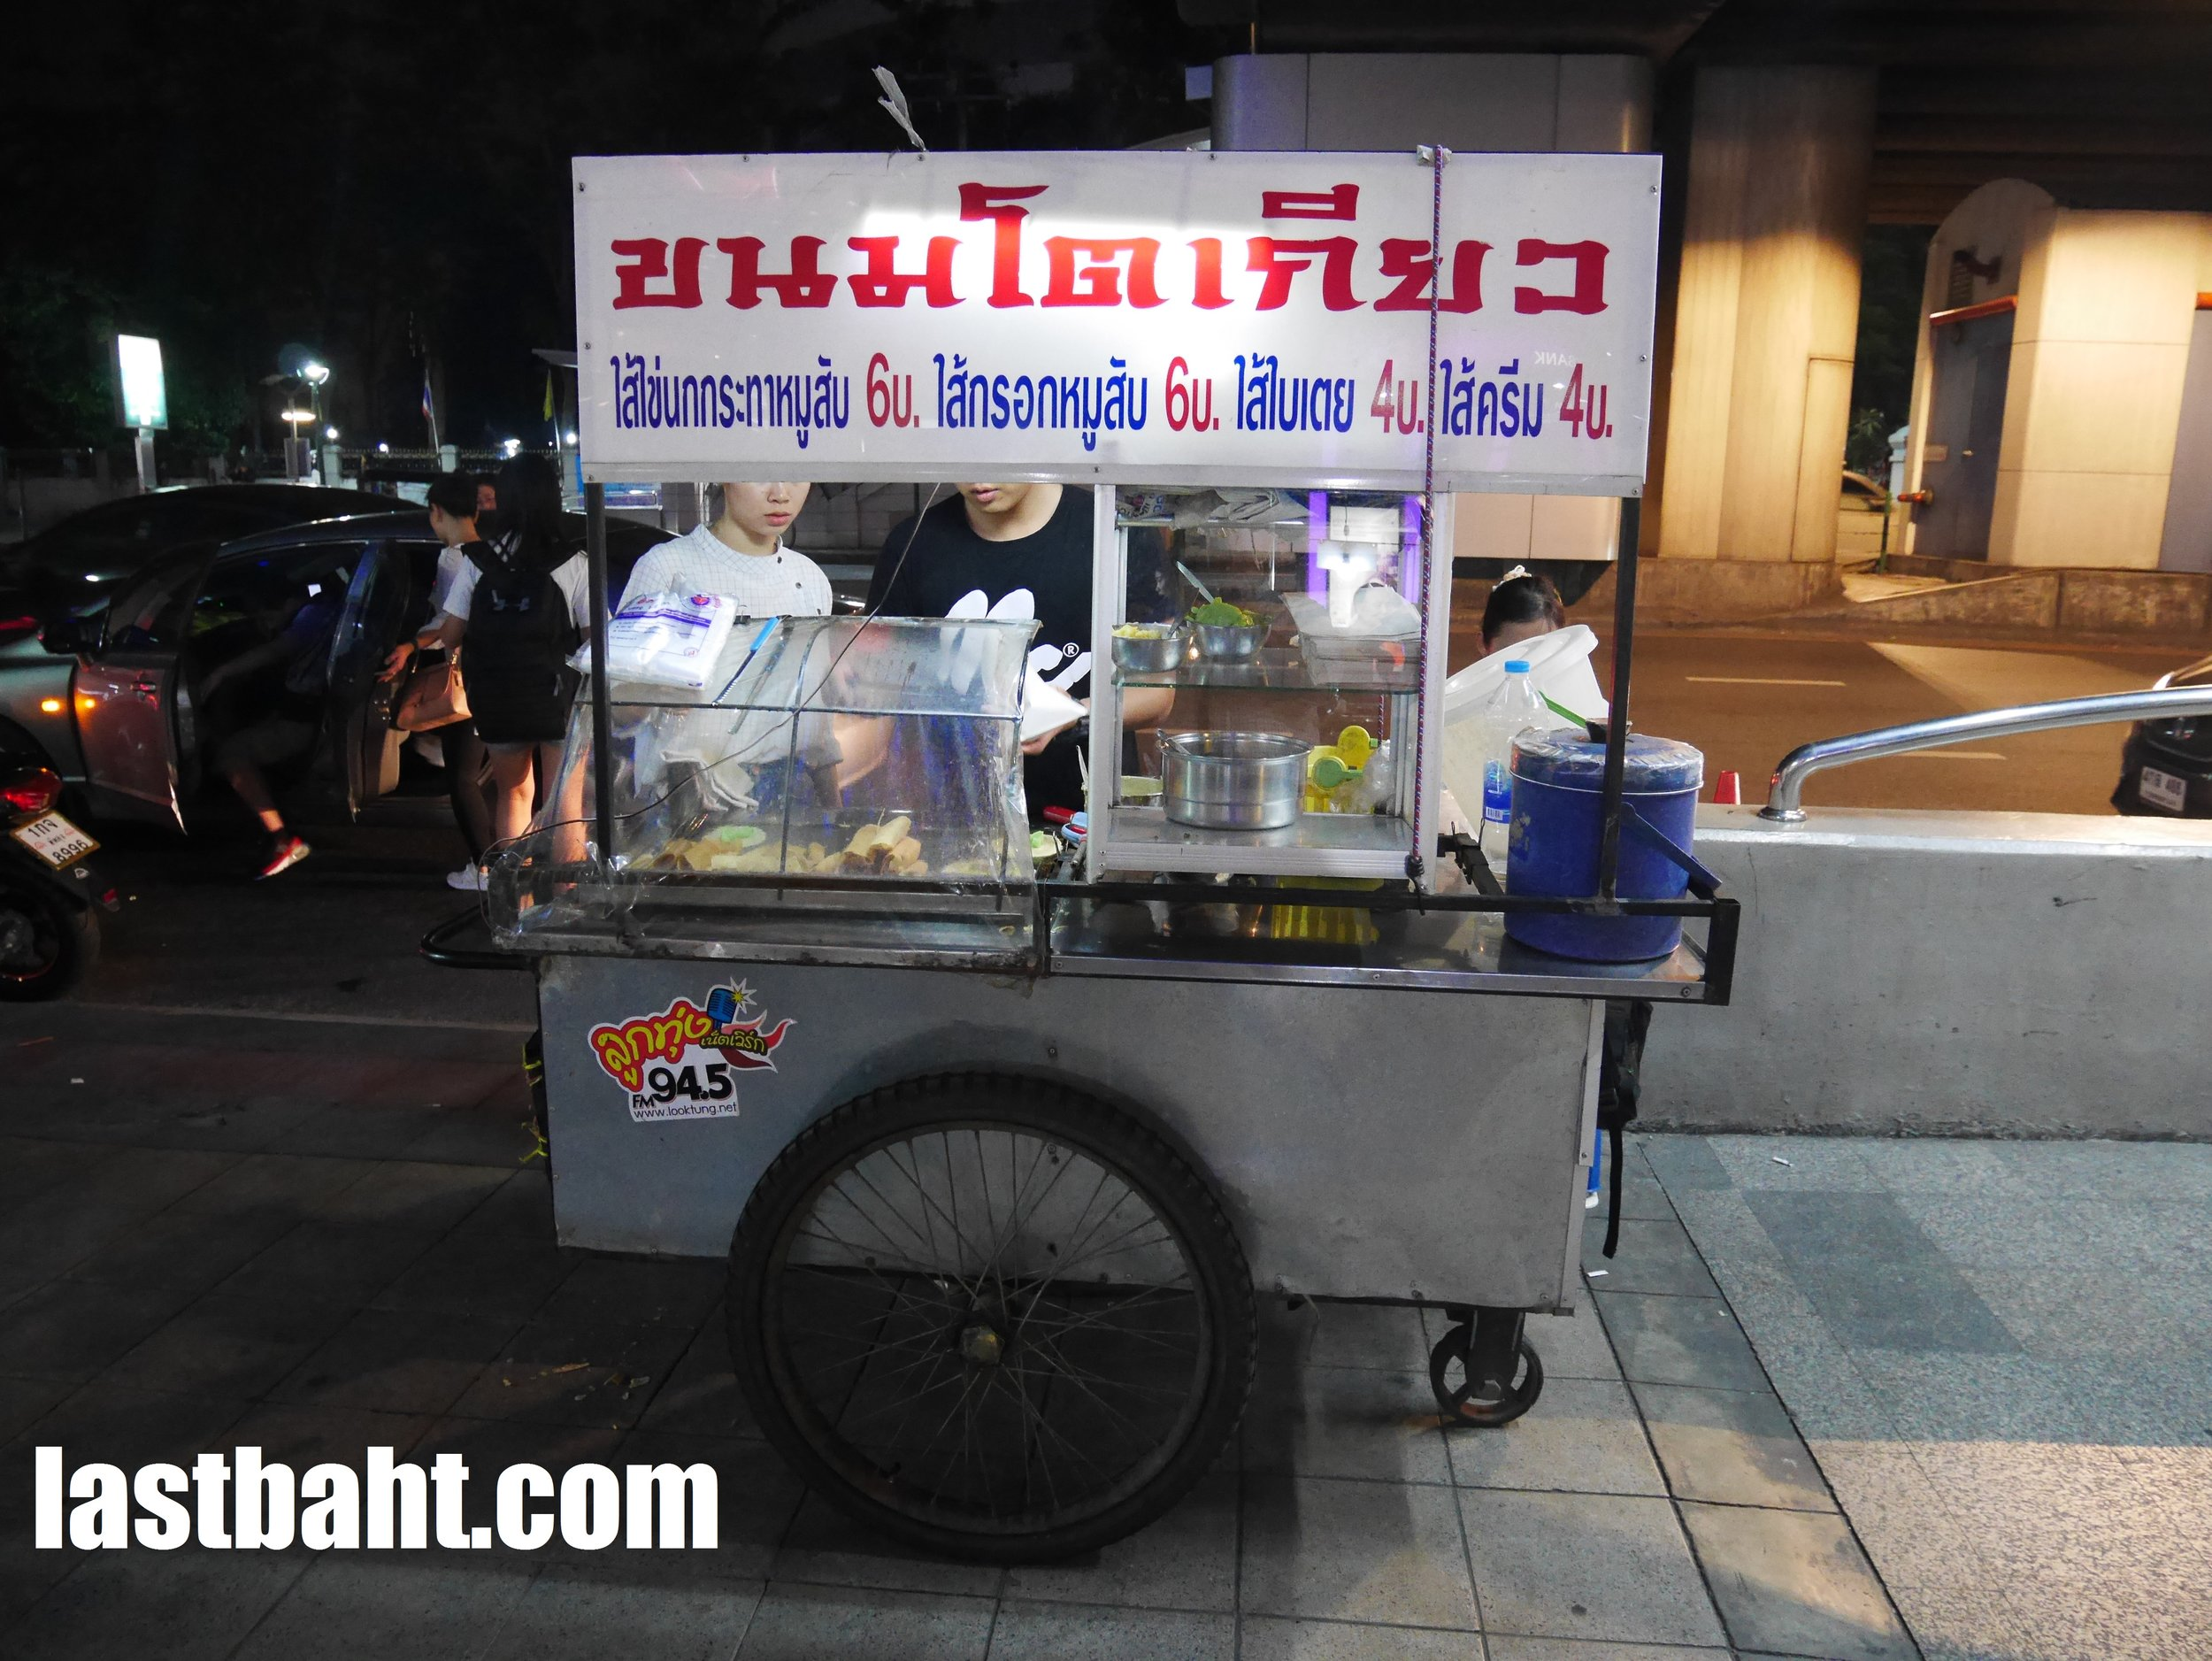 street food snack stall in Bangkok